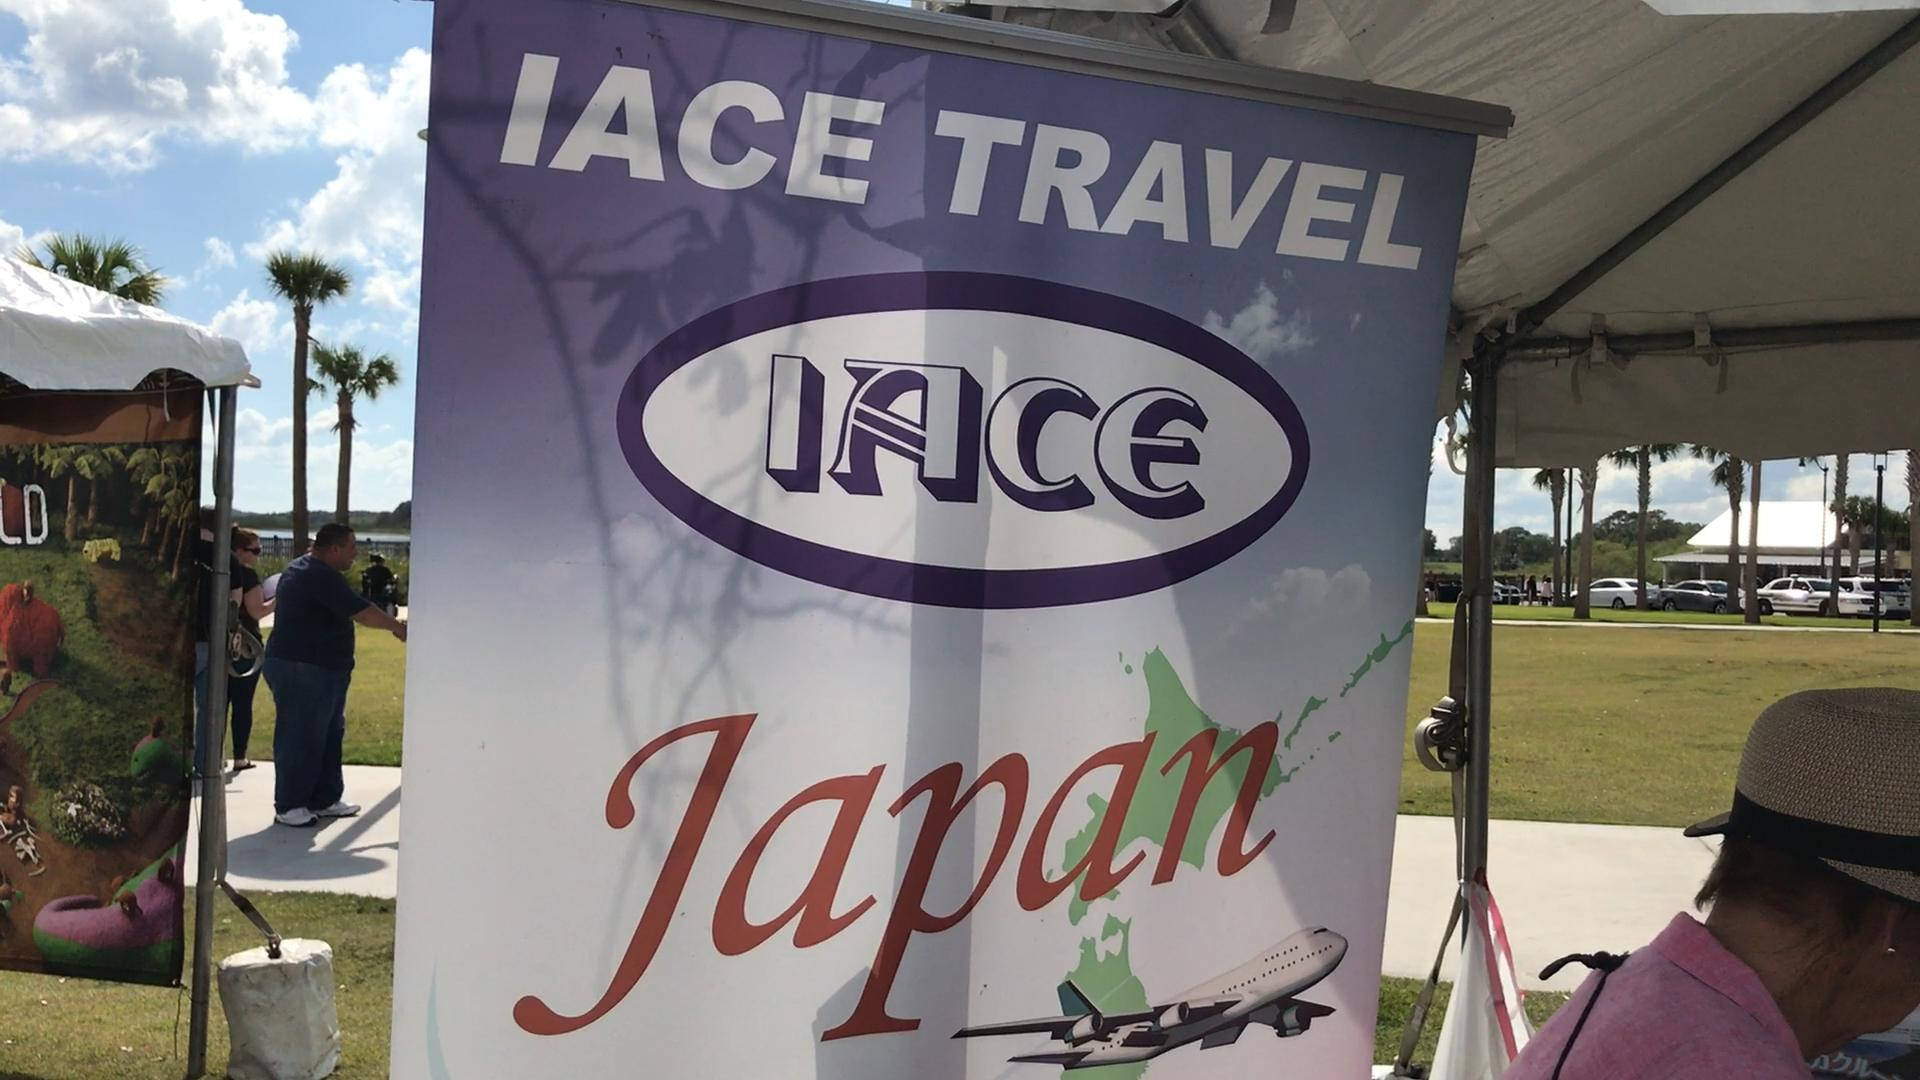 IACE Travel - JAO Orlando Japan Festival Review YouTube Video 2017 Lots of Fun Every Year